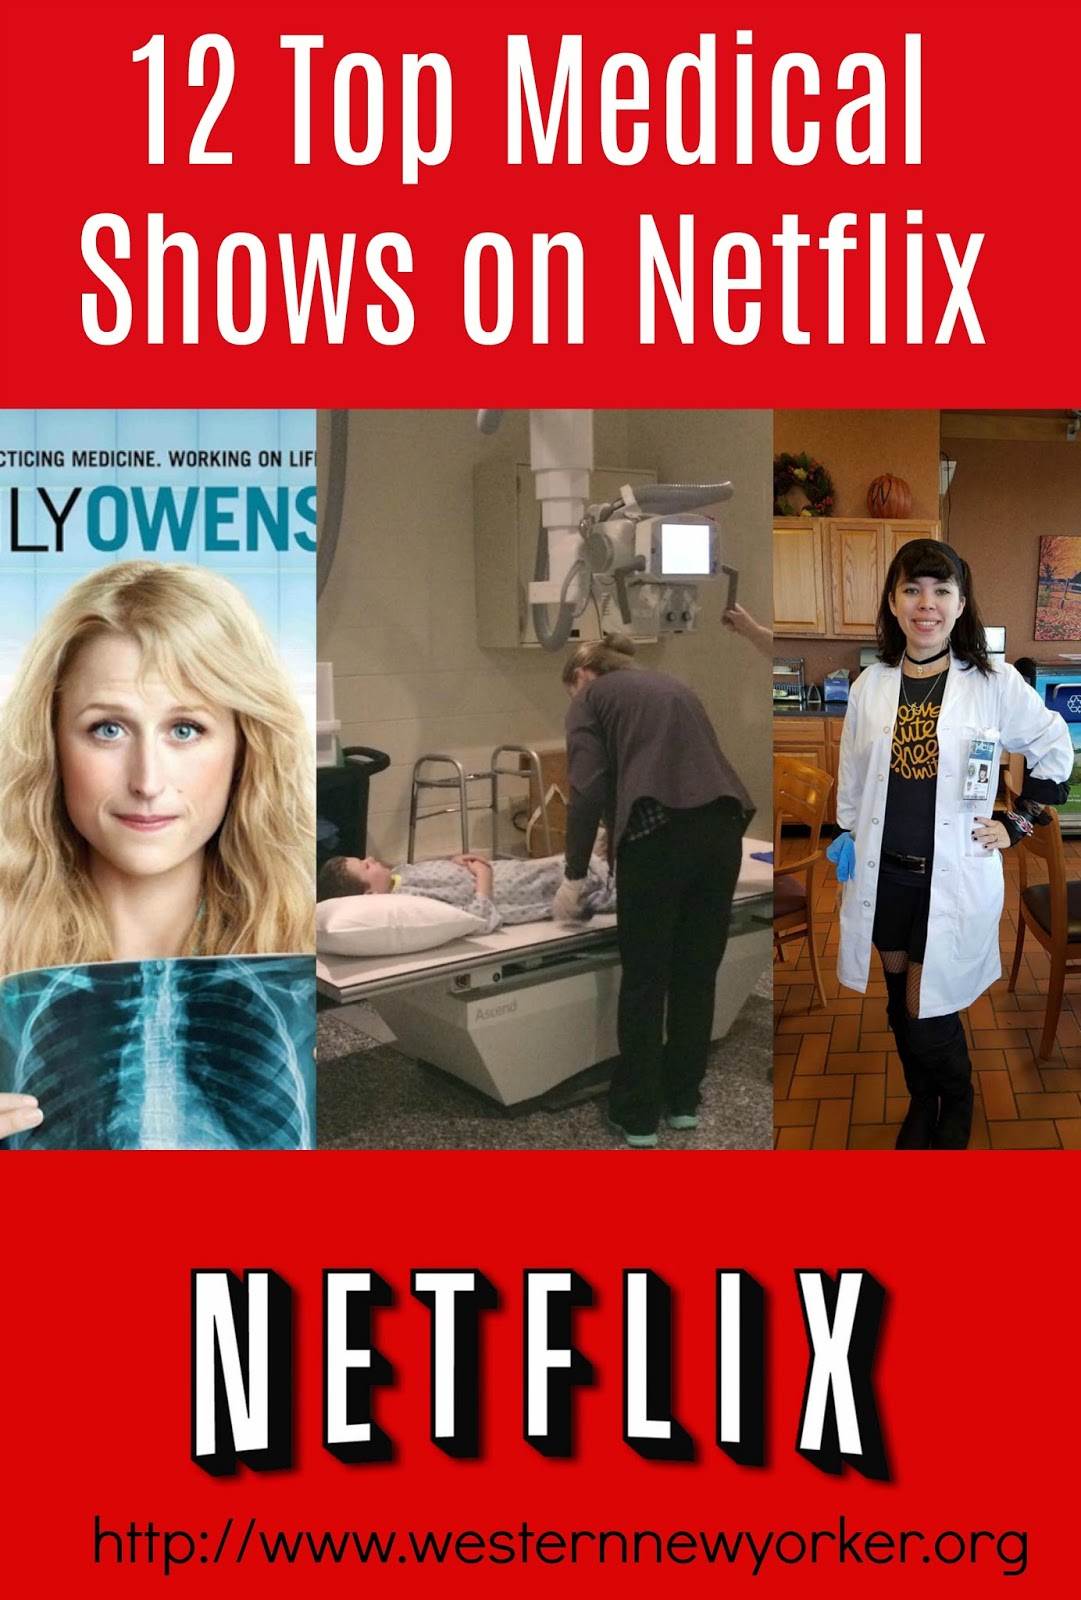 The Western New Yorker: 12 Top Medical Shows on Netflix